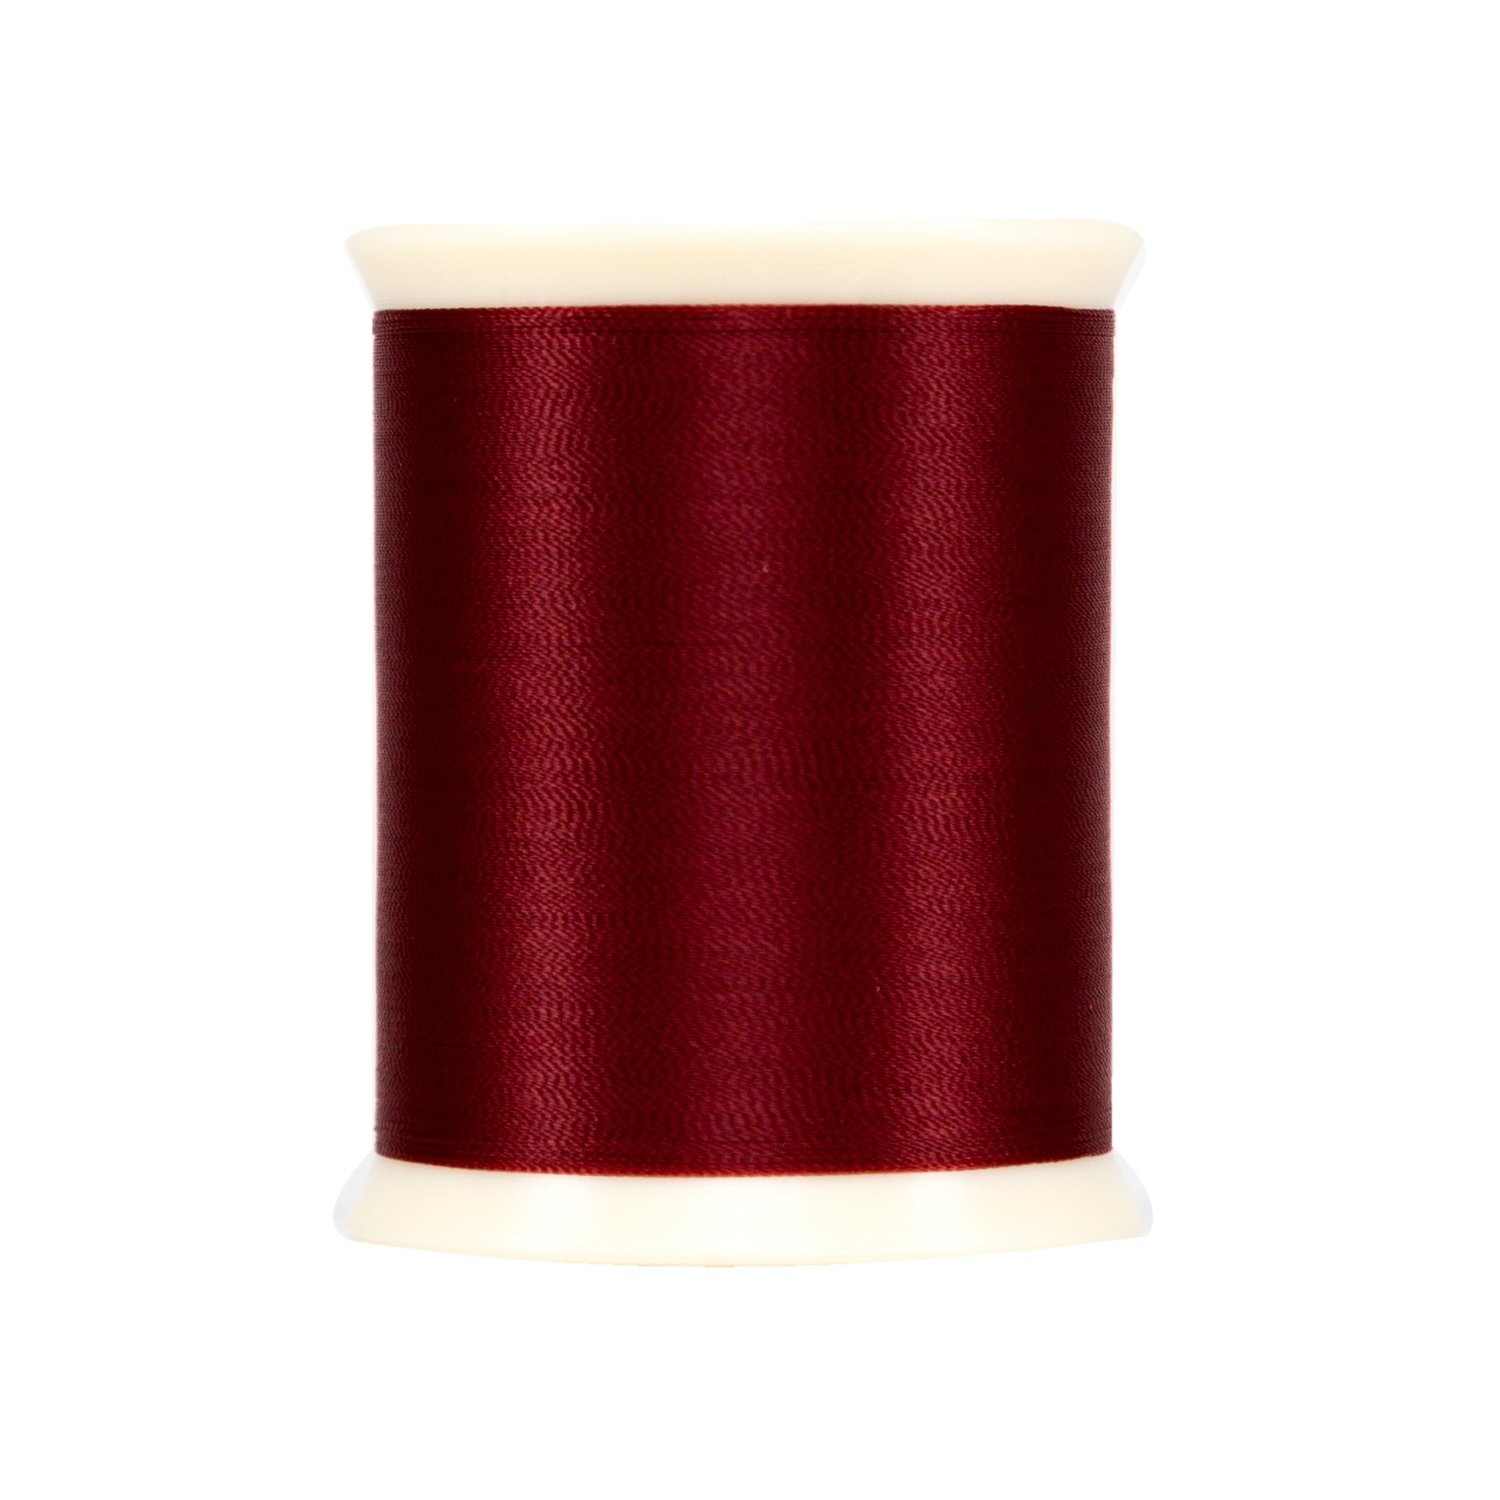 #7015 Red MicroQuilter 800 yd spool